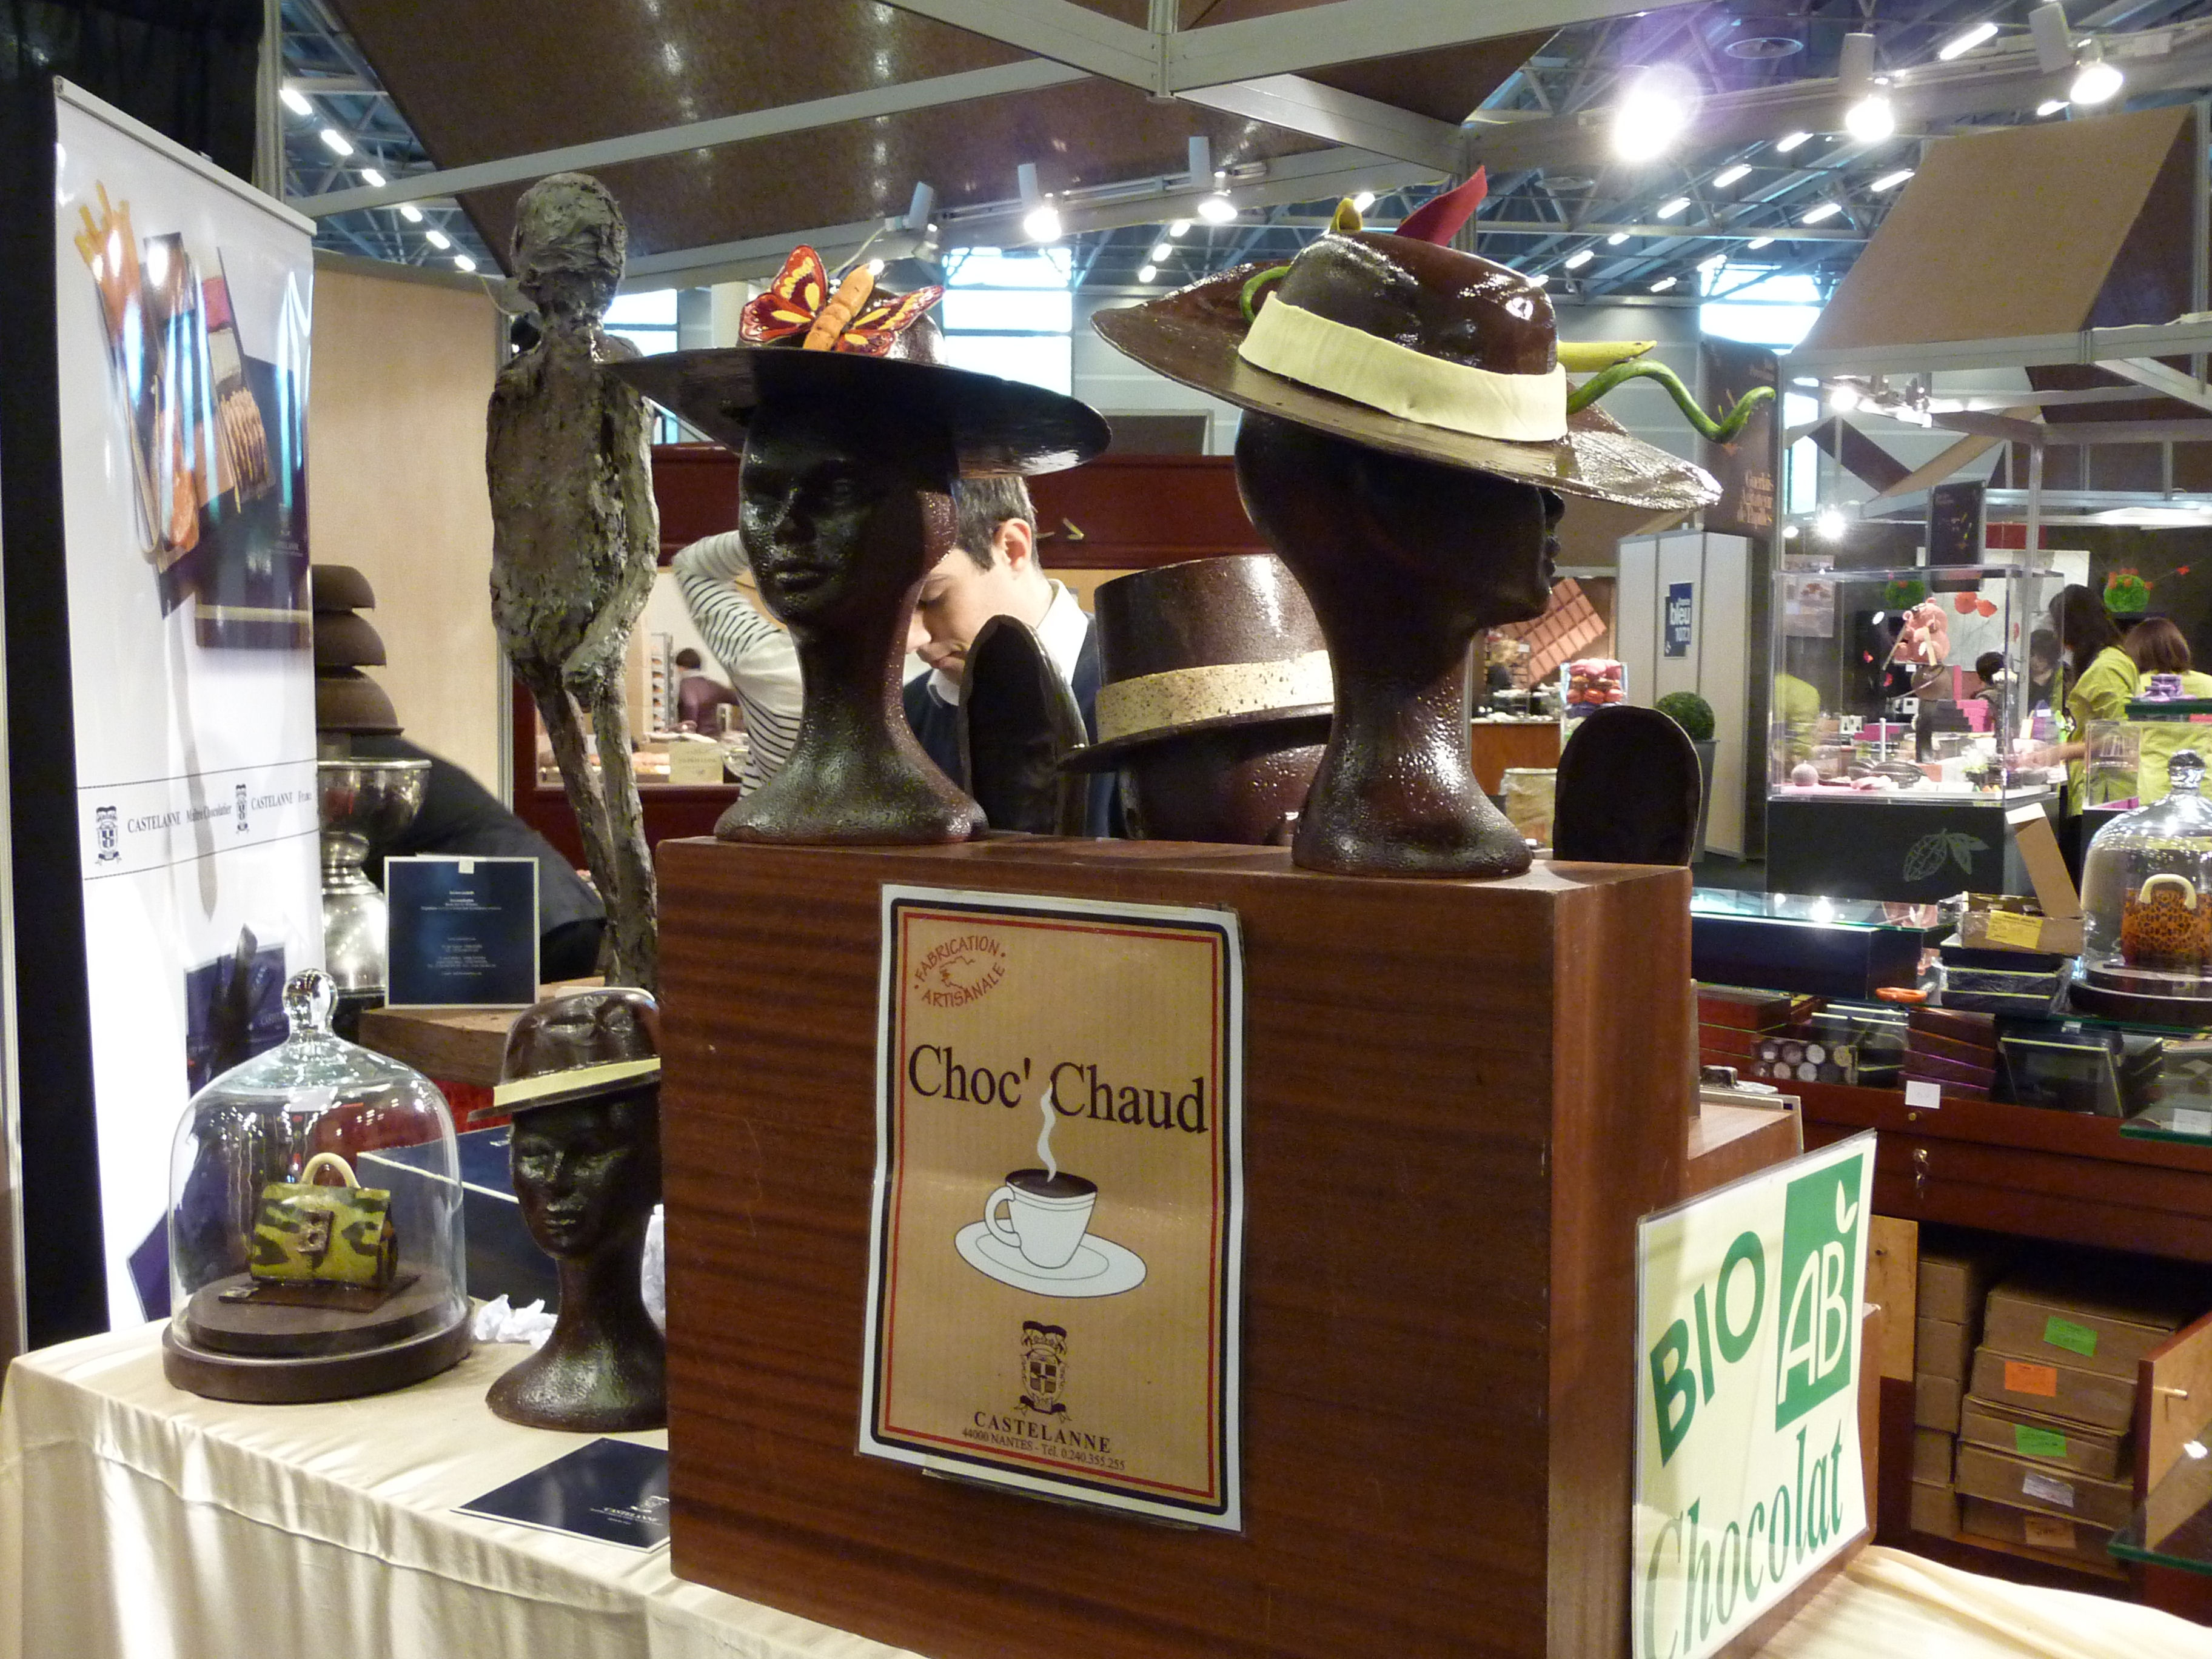 Salon Du Chocolat Nantes Chocolate Hats Paris Insights The Blog Paris Insights The Blog